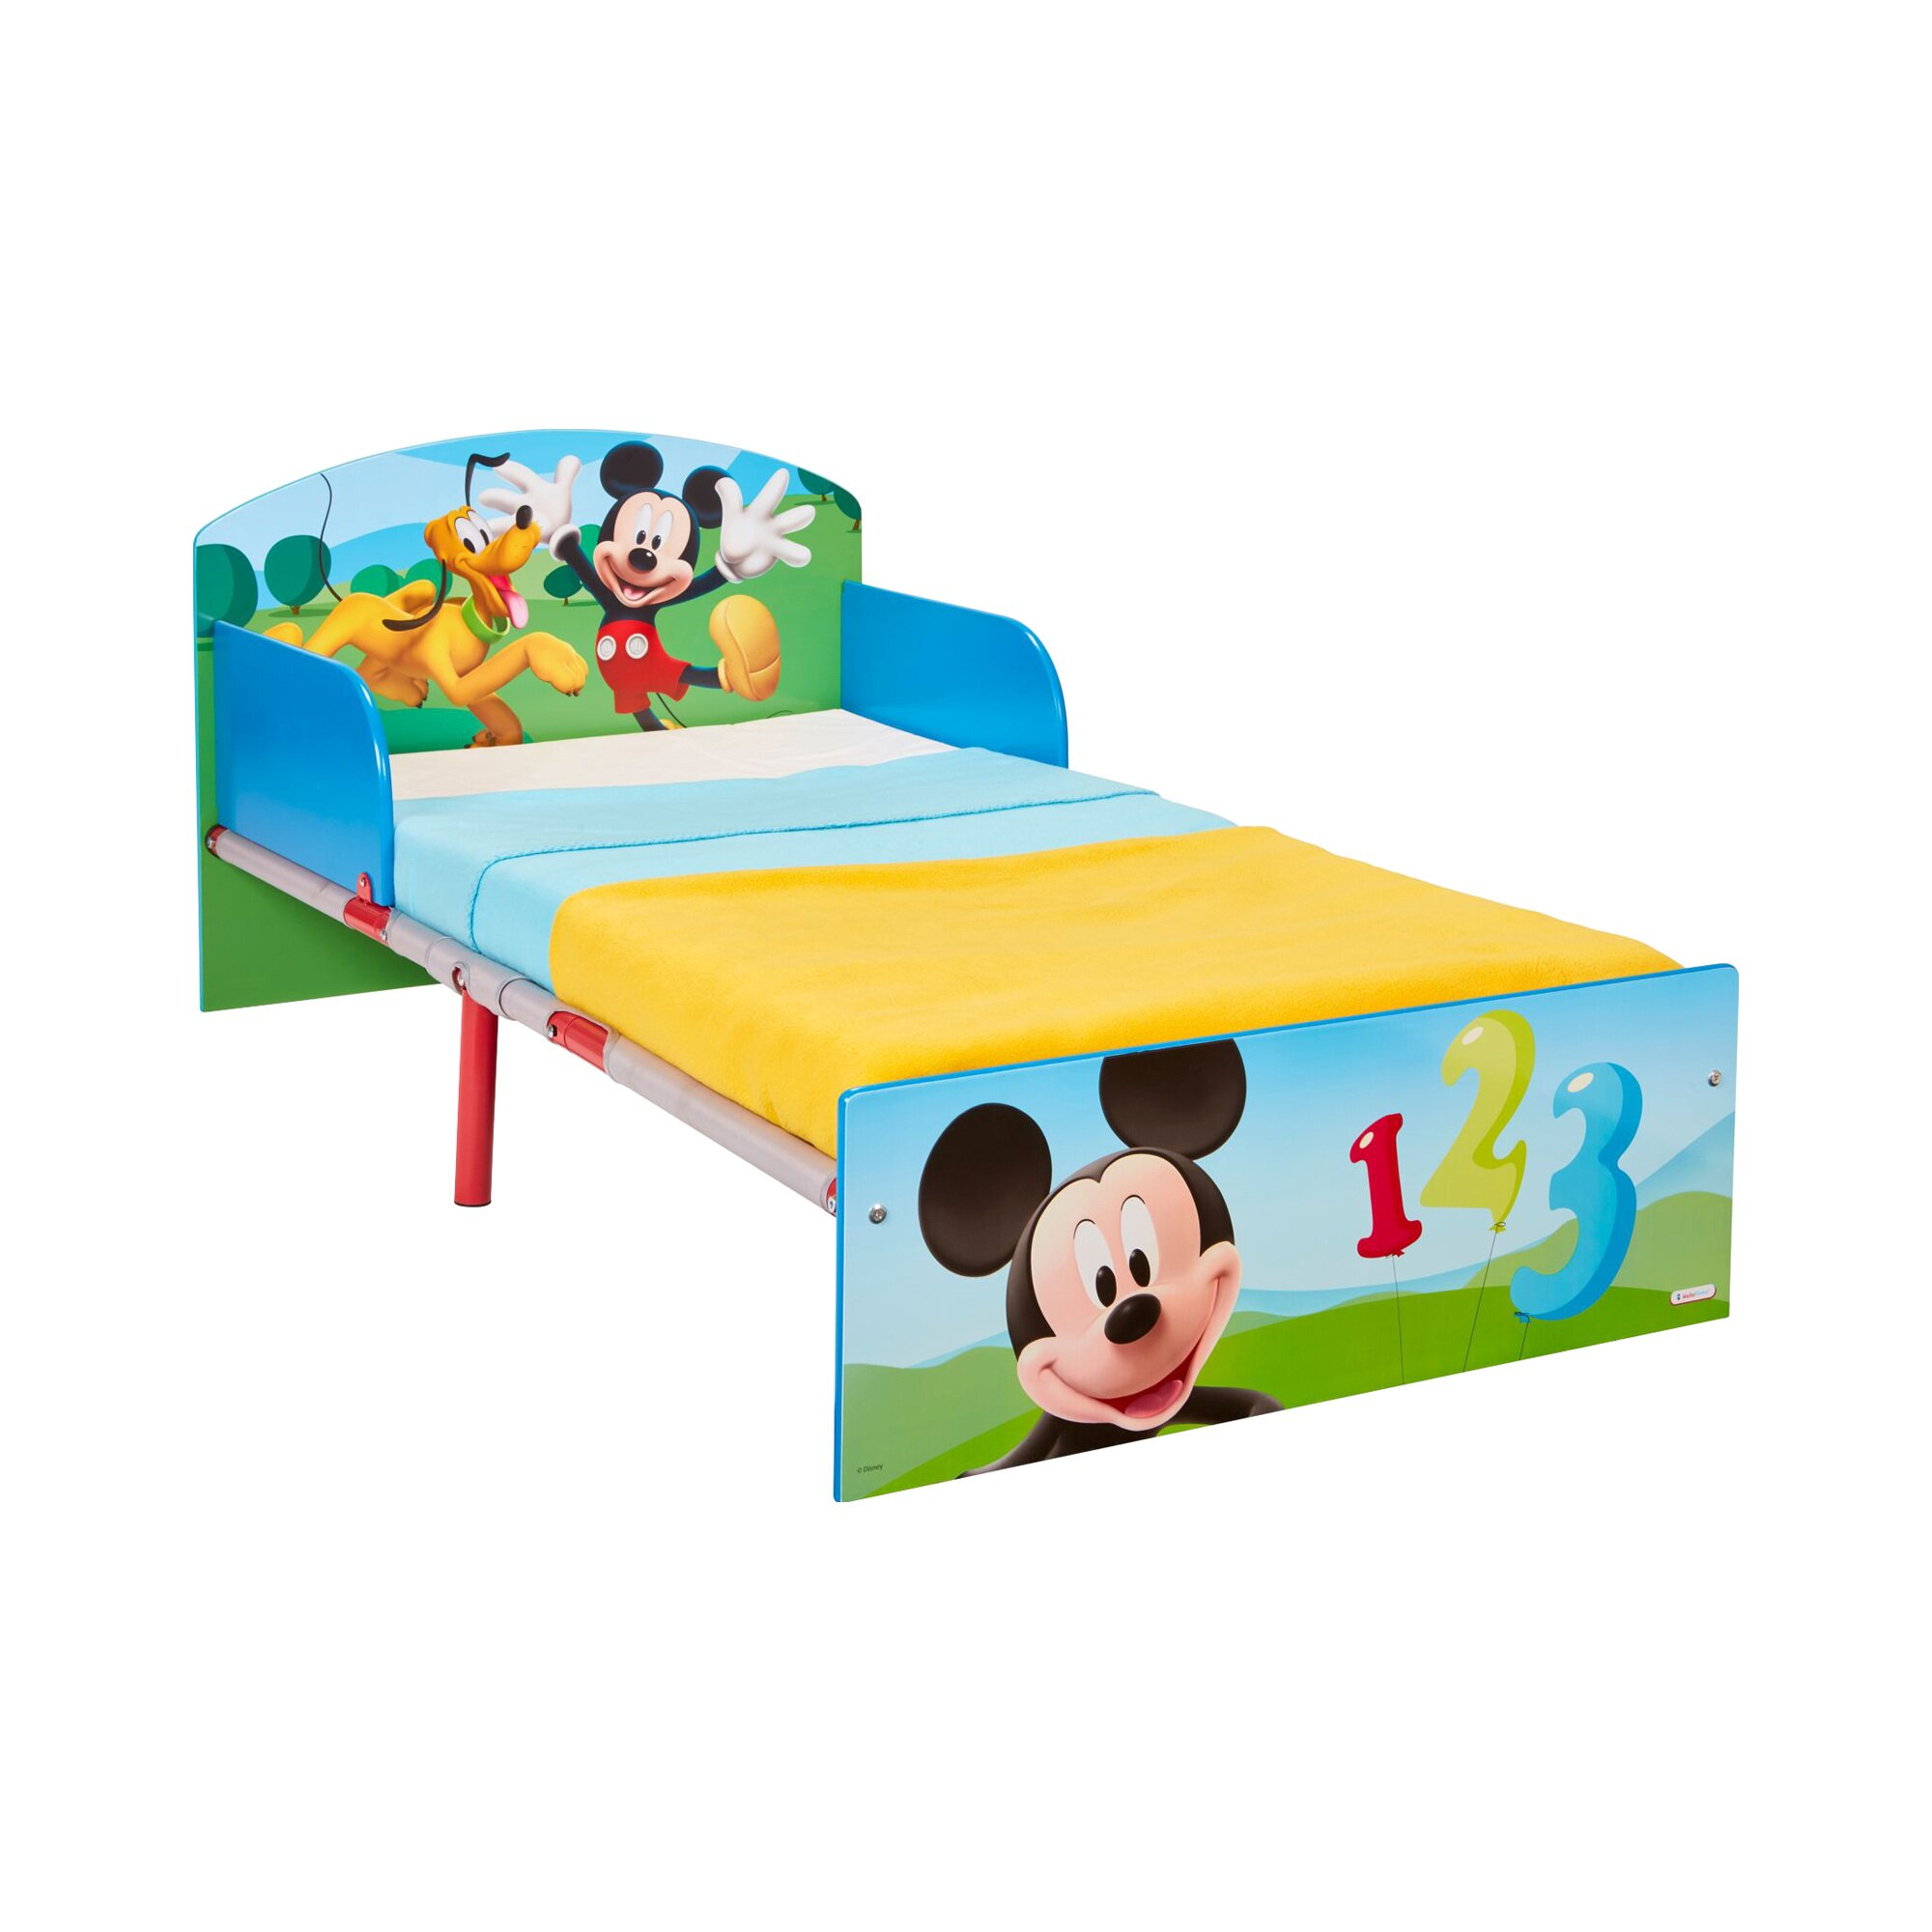 disney-mickey-mouse-friends-kinderbett-mickey-70-x-140-cm